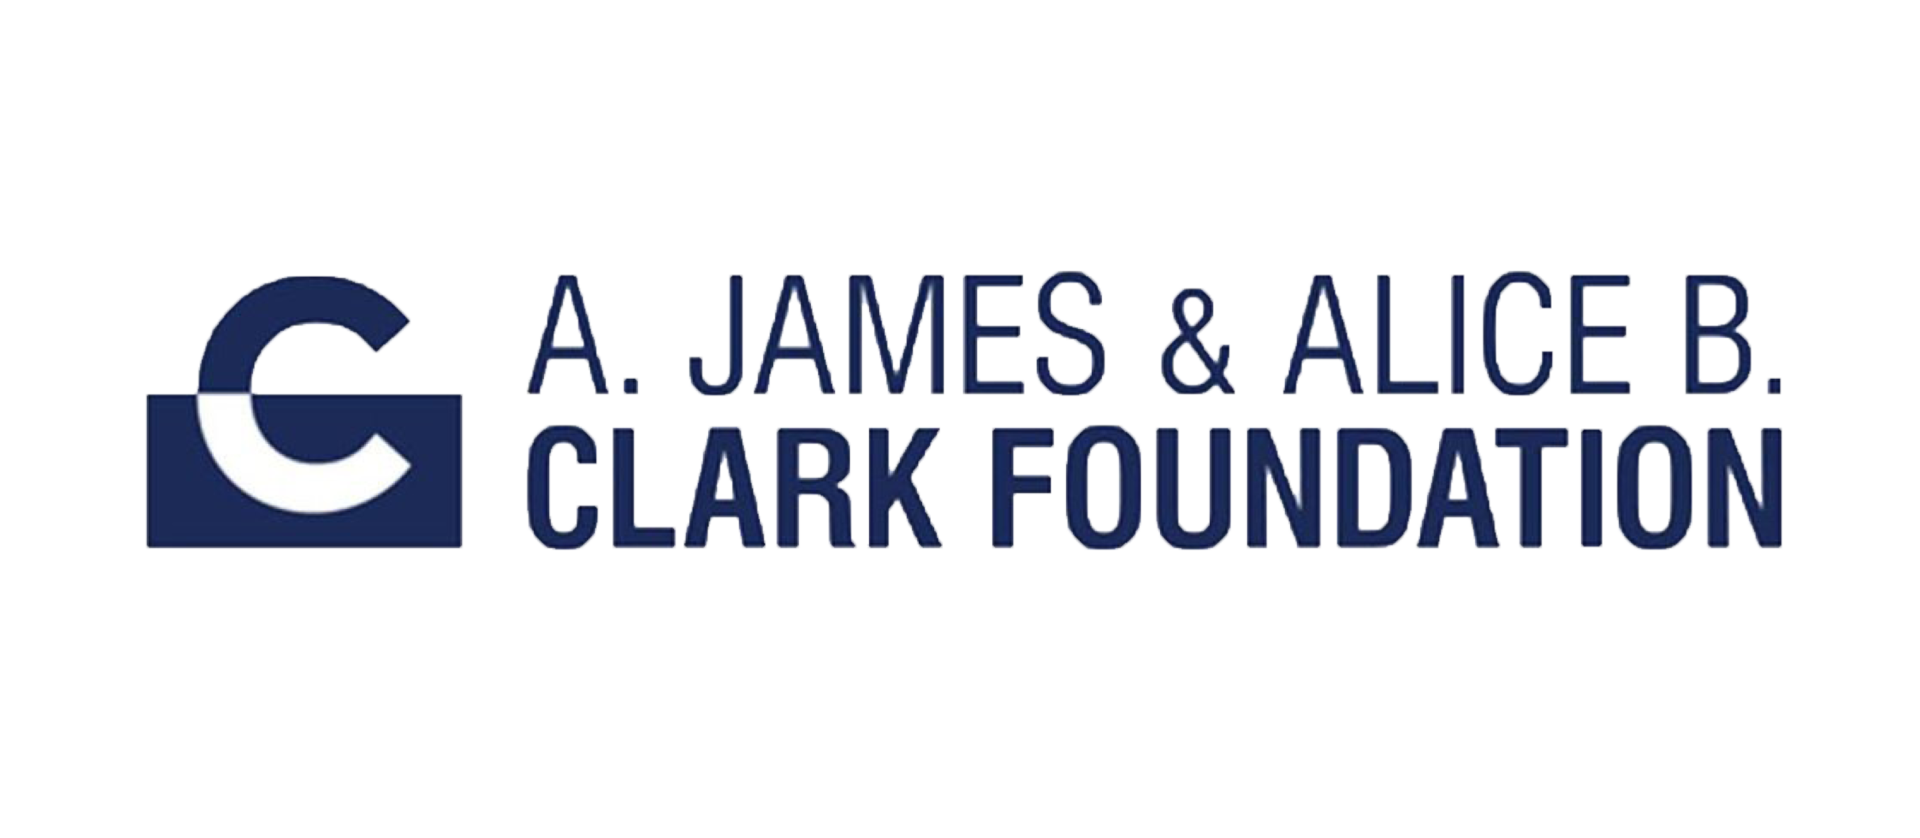 A.-James-and-Alic-B.-Clark-Foundation